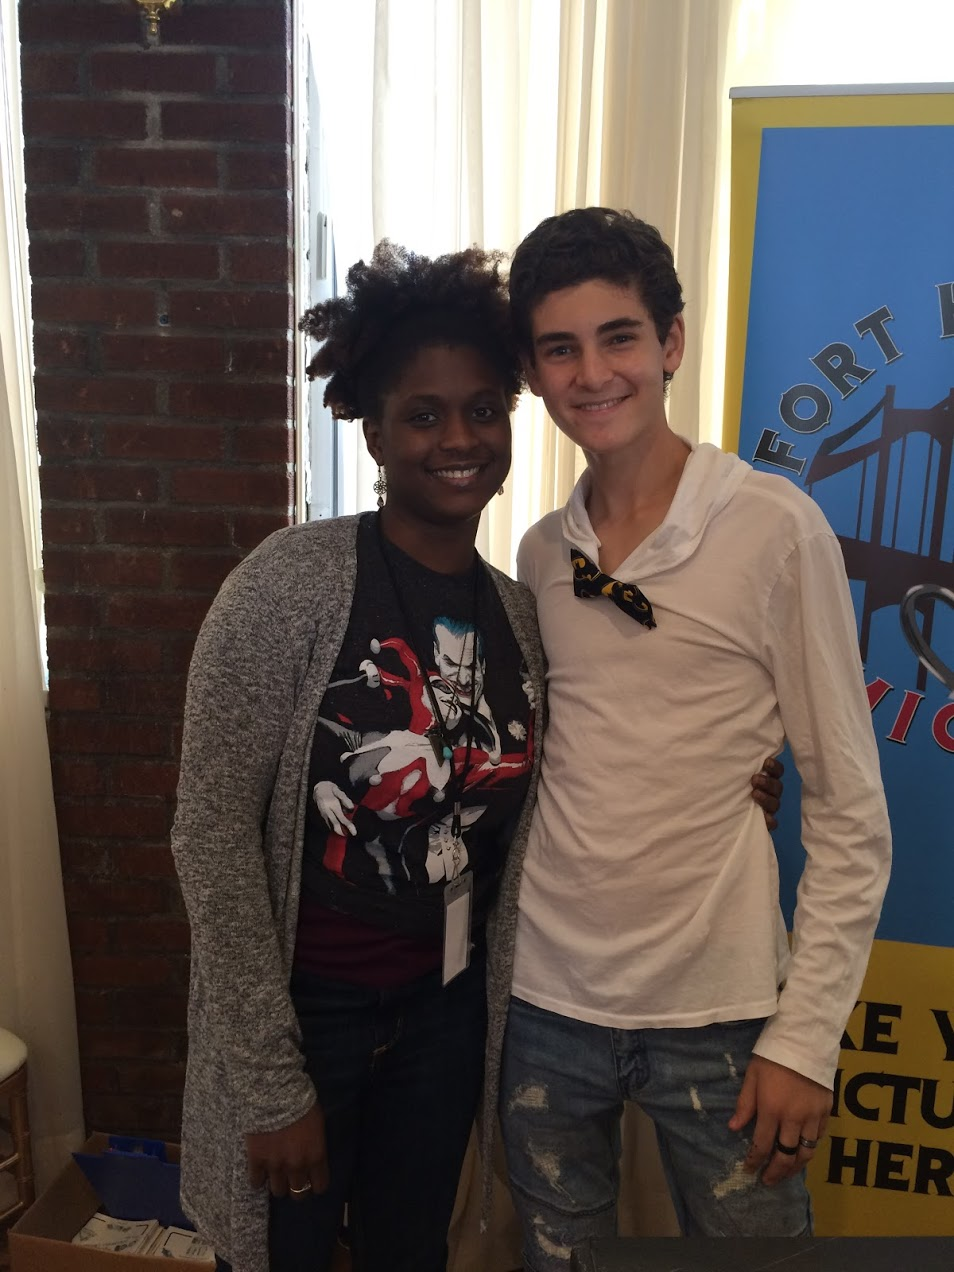 Gotham David Mazouz With PPI Batman Bow Tie